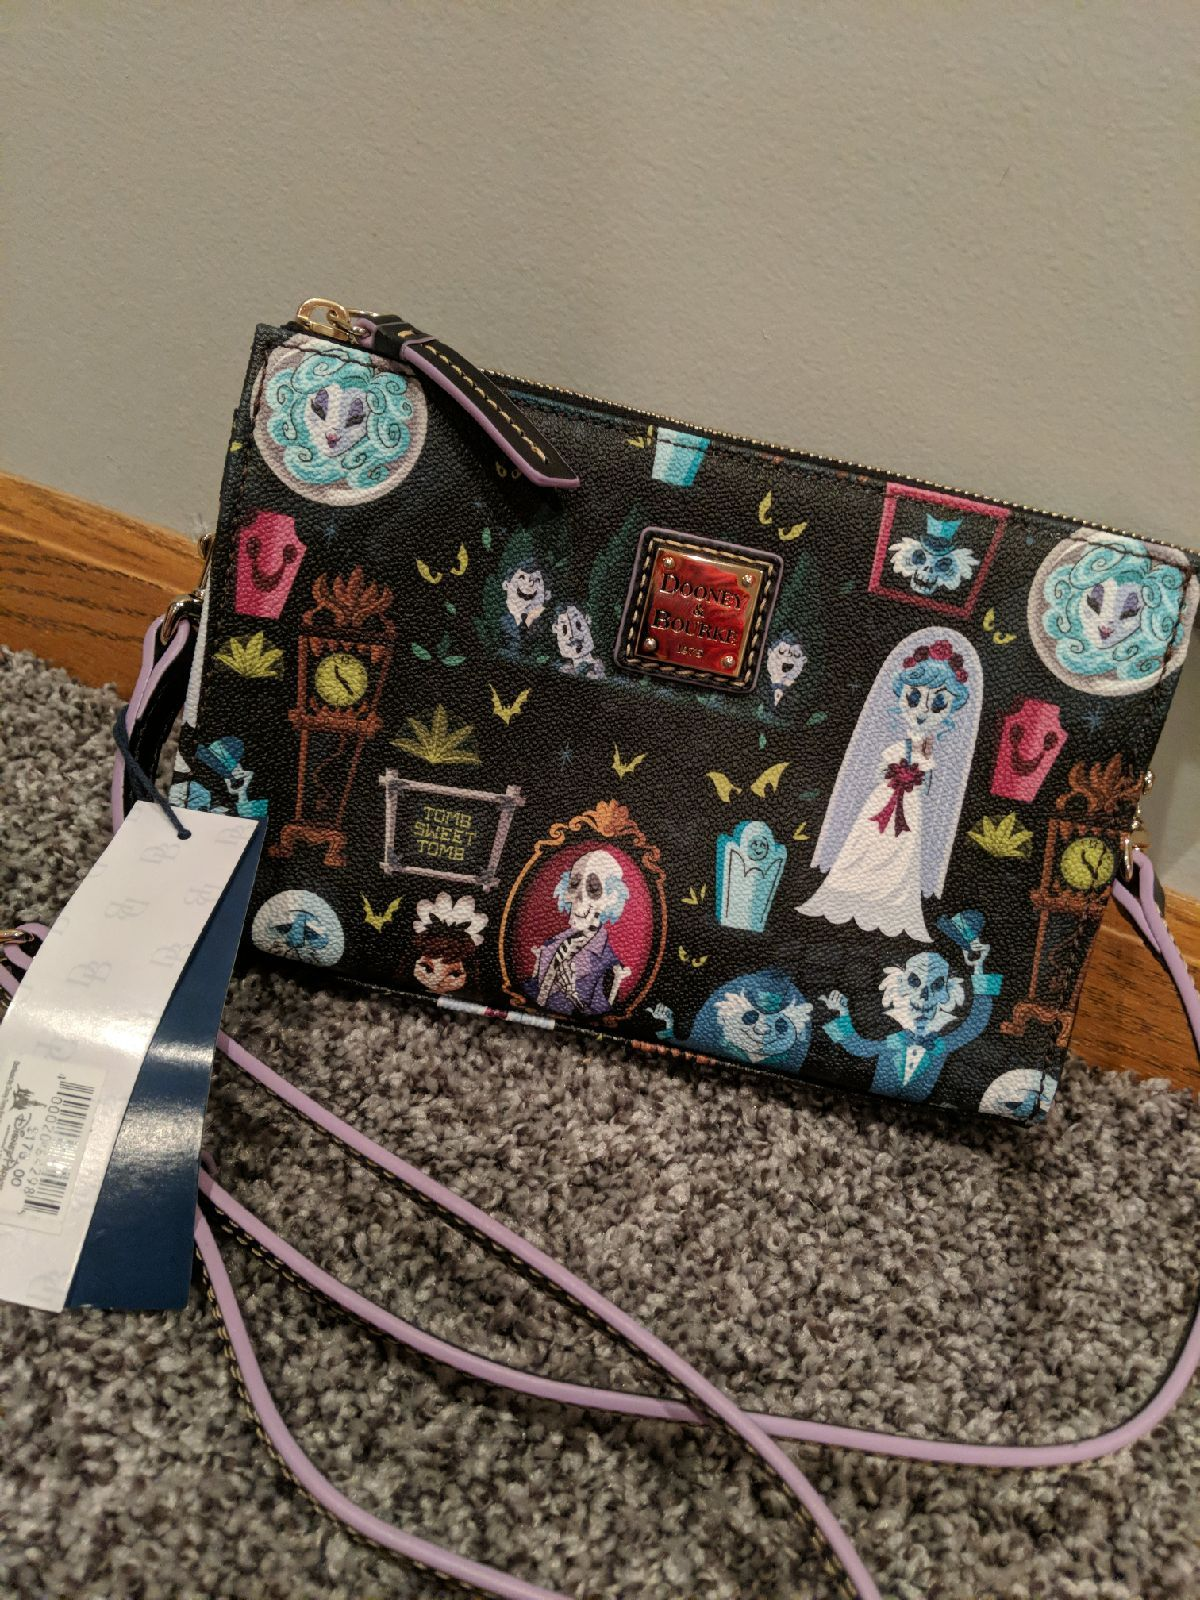 This Is A Brand New From The Park Dooney And Bourke Cross Body Haunted Mansion Bag It Is So Cute I Just Never Used It So Dooney Bourke Disney Dooney